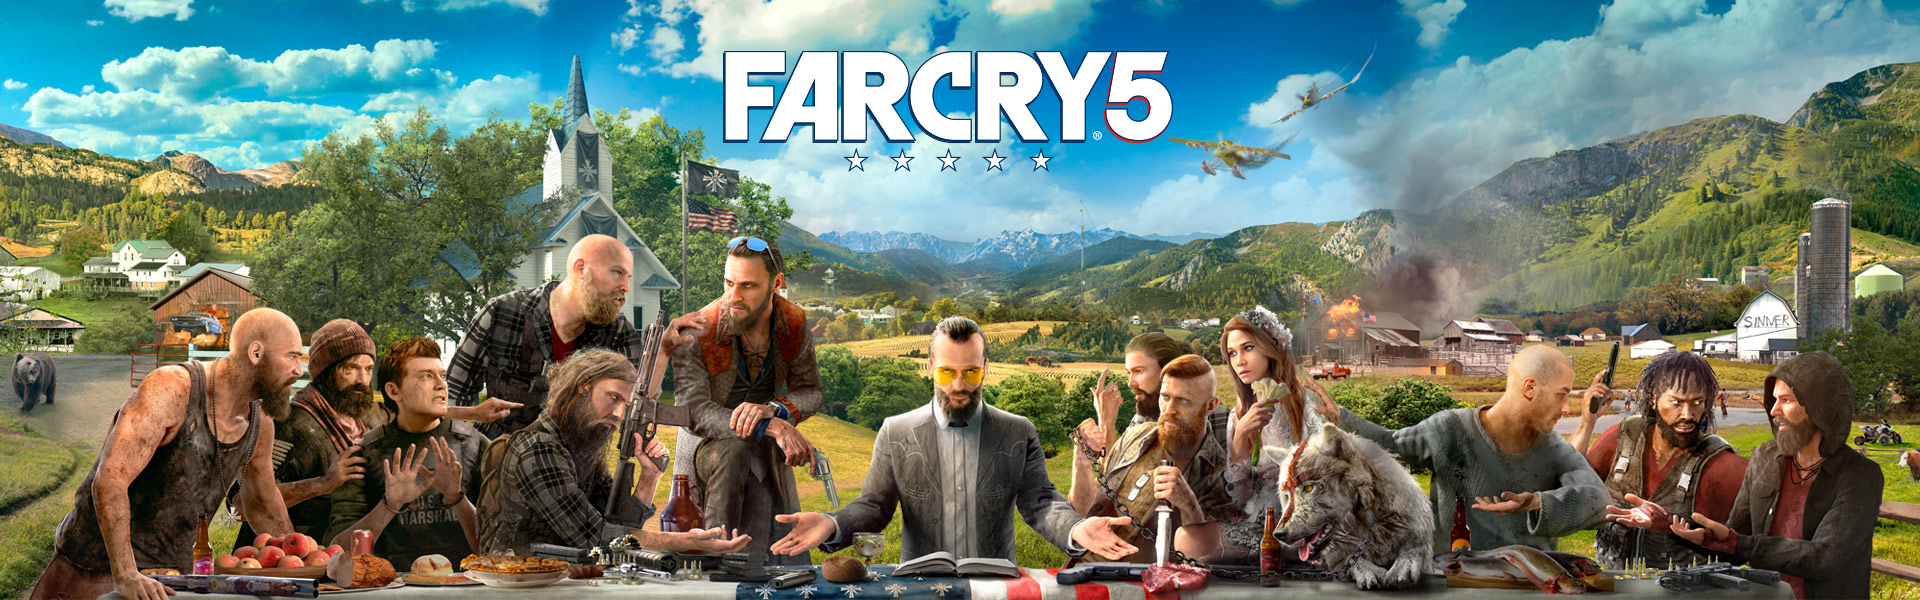 Far Cry 5 (characters sitting at table imitating Leonardo Da Vinci's Last Supper Painting)